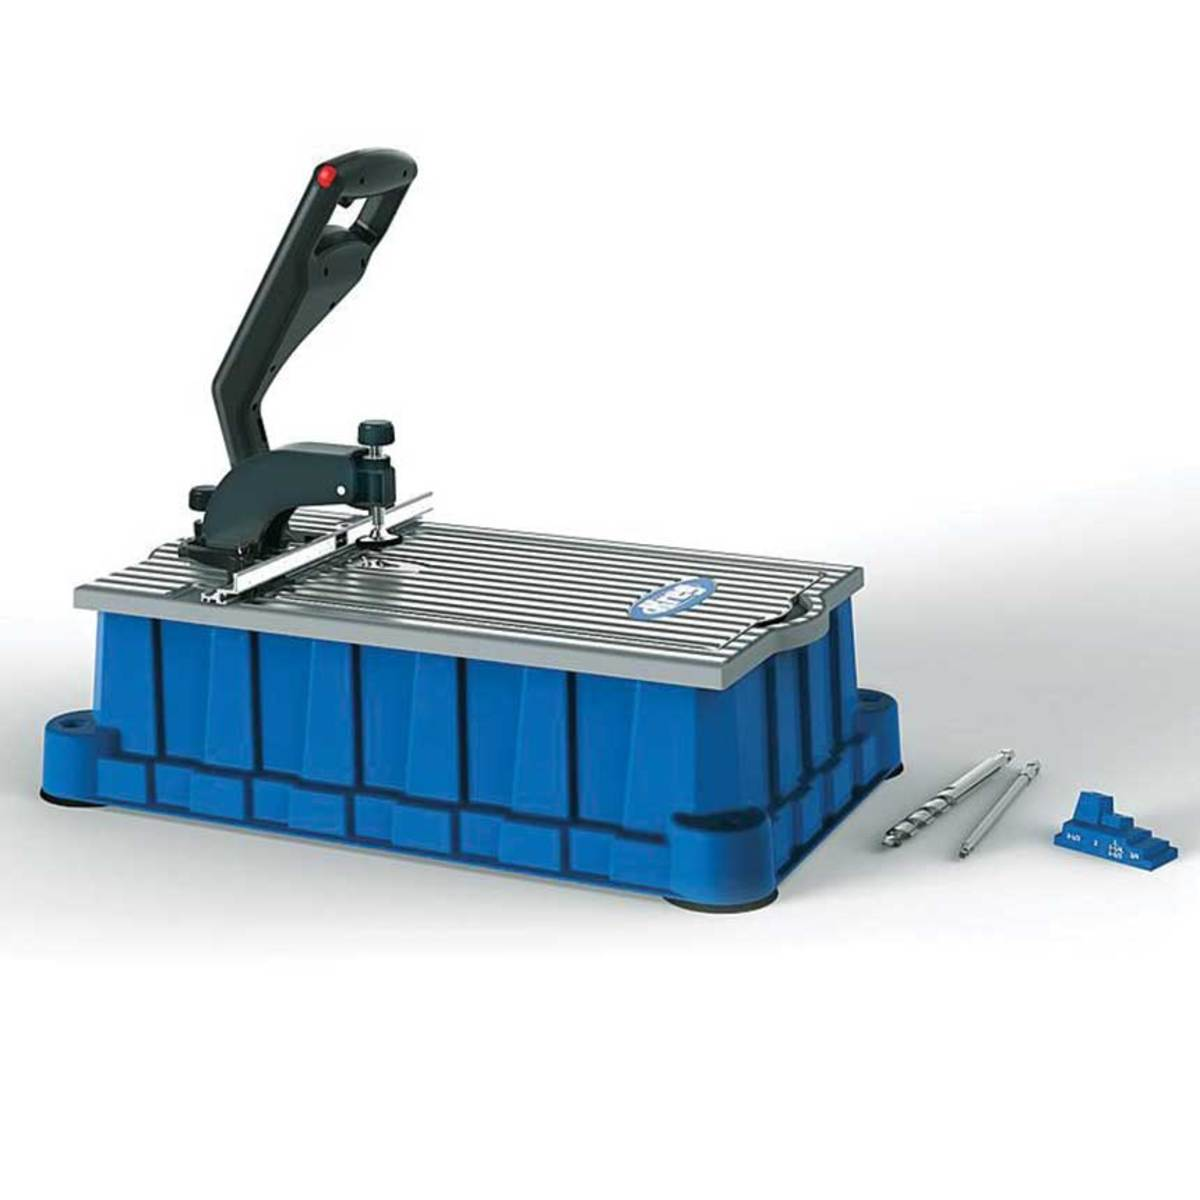 Kreg offers the Foreman, a benchtop pocket holemachine for fast, repeatable results.